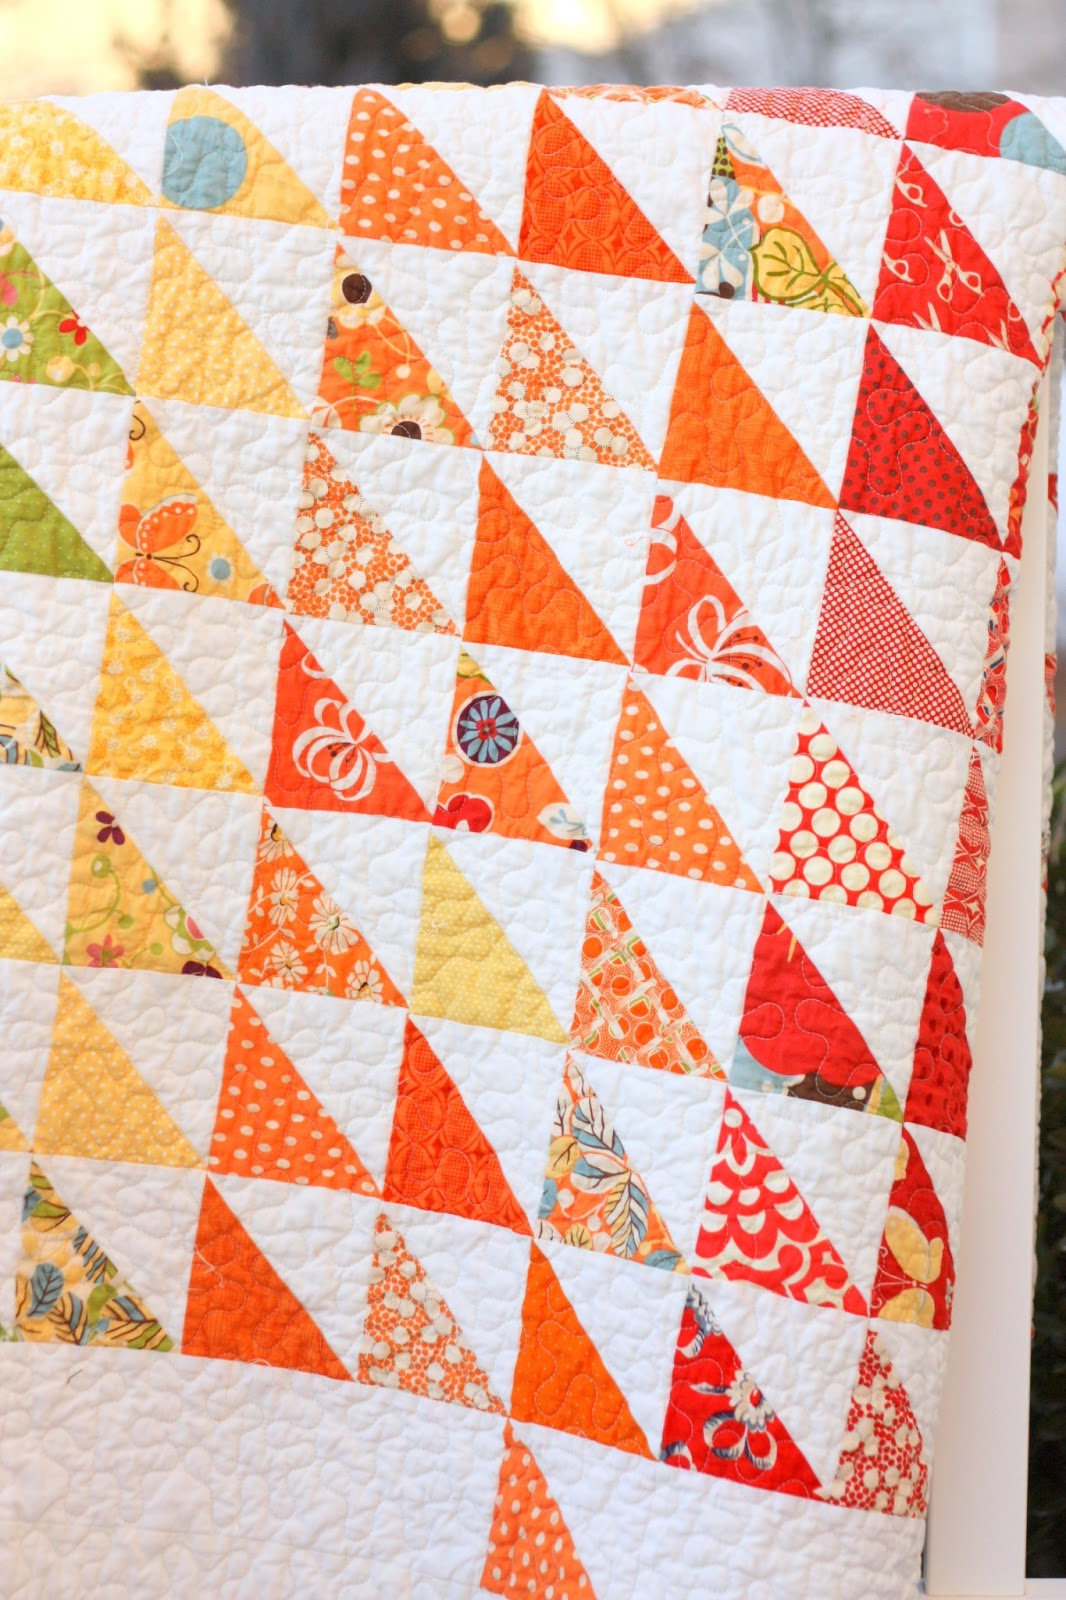 Virtual Quilting Bee - Quilt-Making Technique Basics - Diary of a Quilter -  a quilt blog